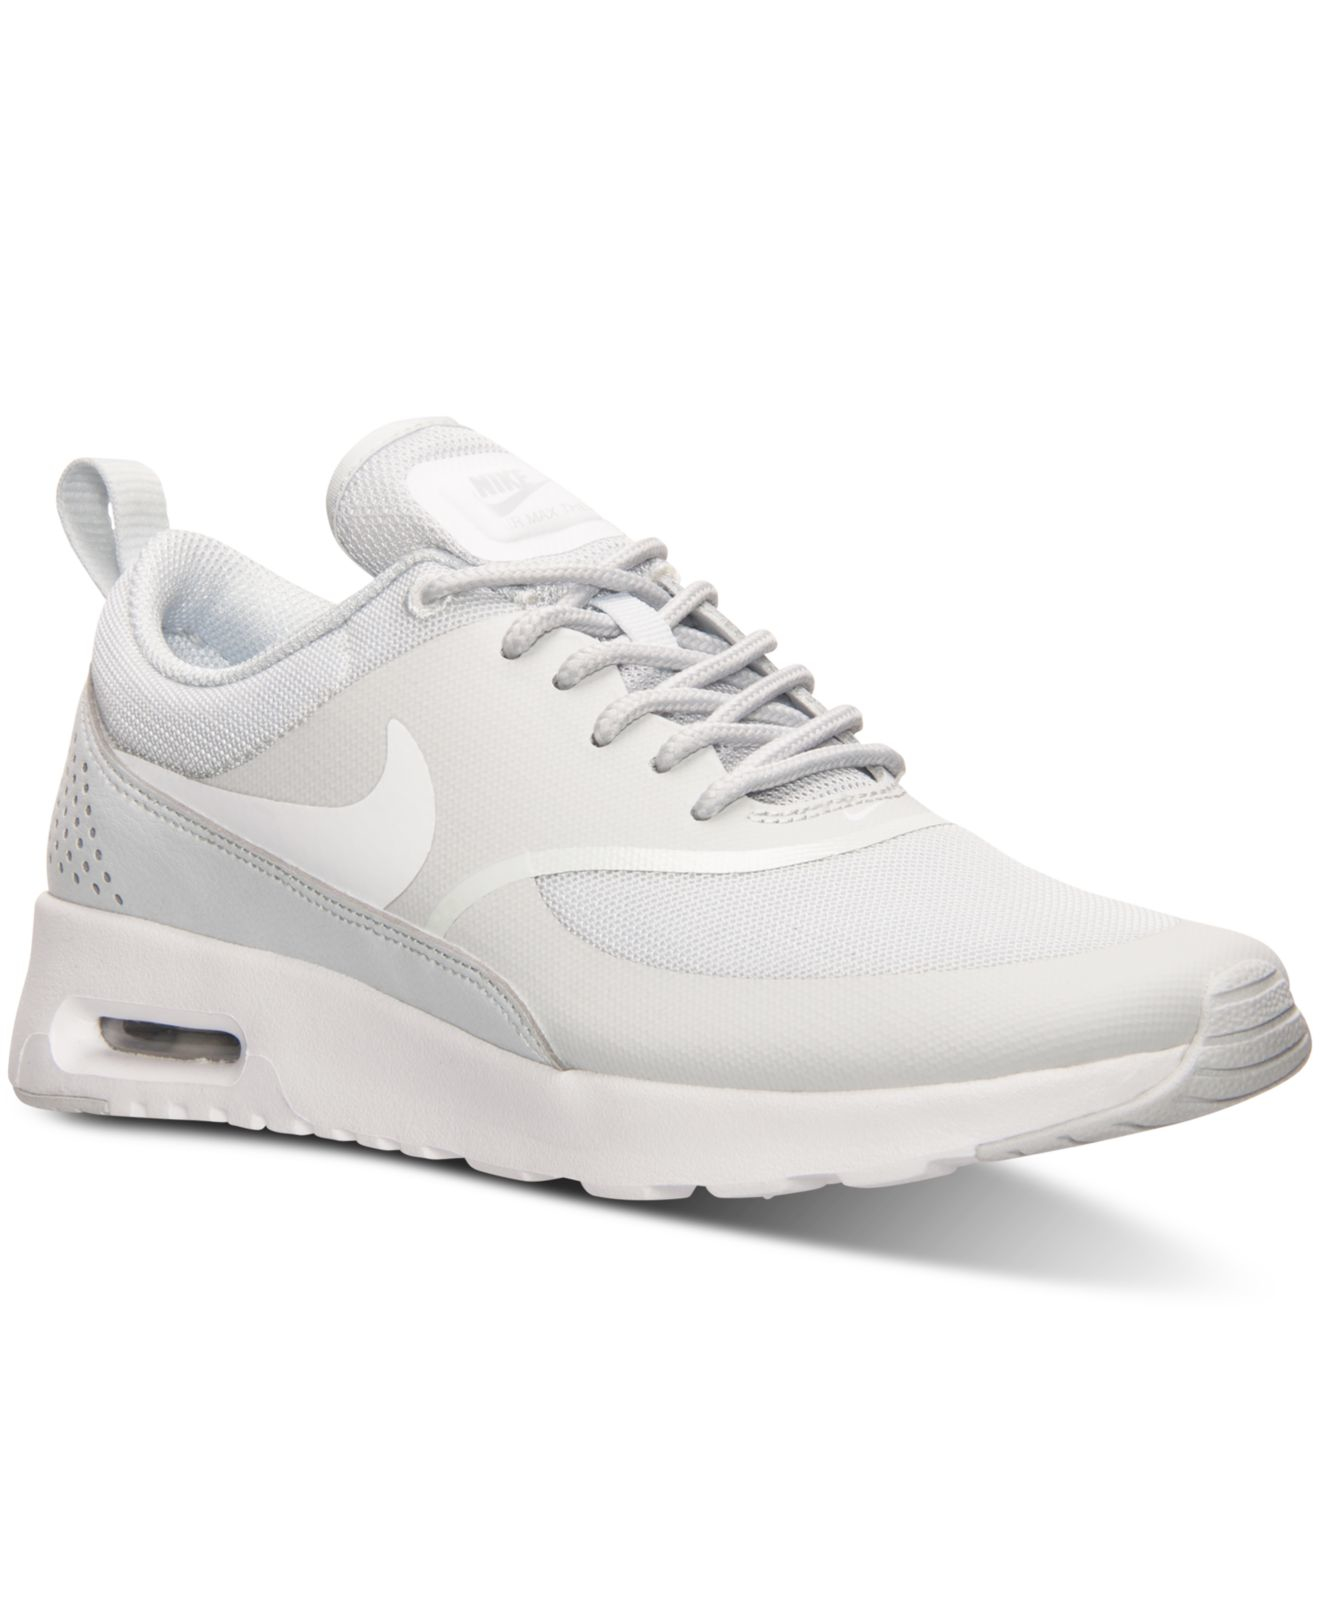 Lyst - Nike Women s Air Max Thea Running Sneakers From Finish Line ... 51e33734c876